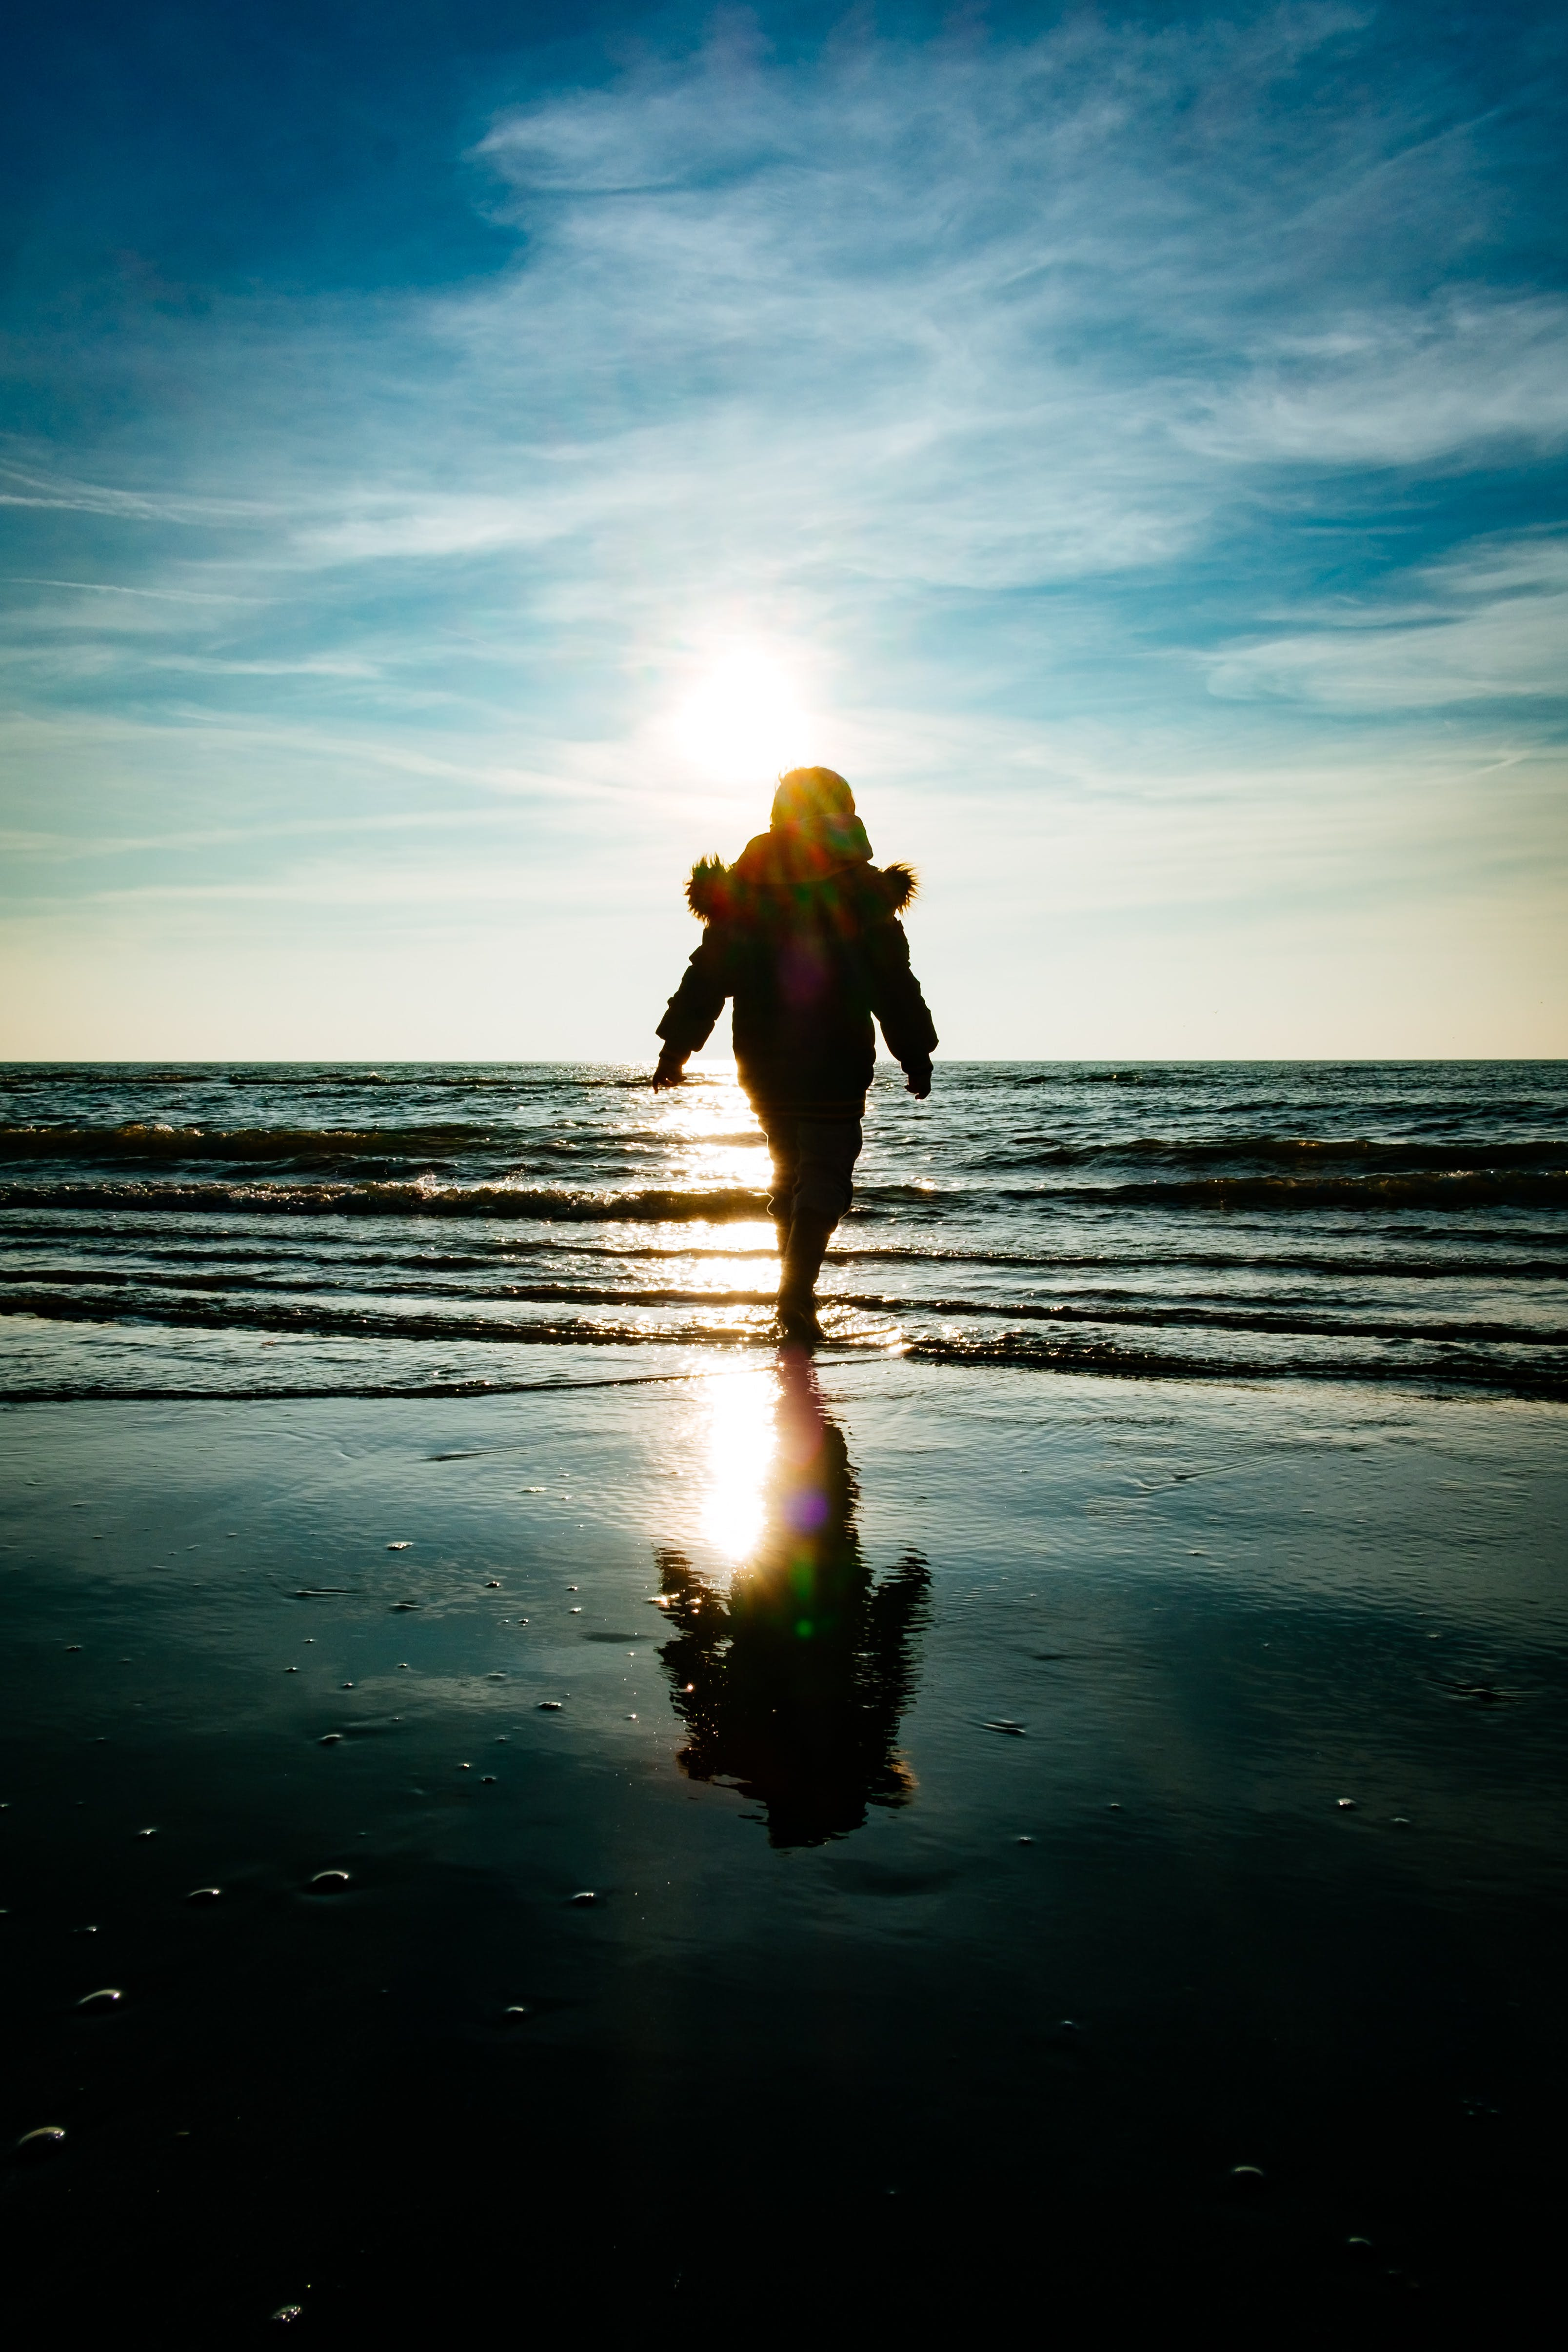 Silhouette Photography of Person Walking on Shoreline